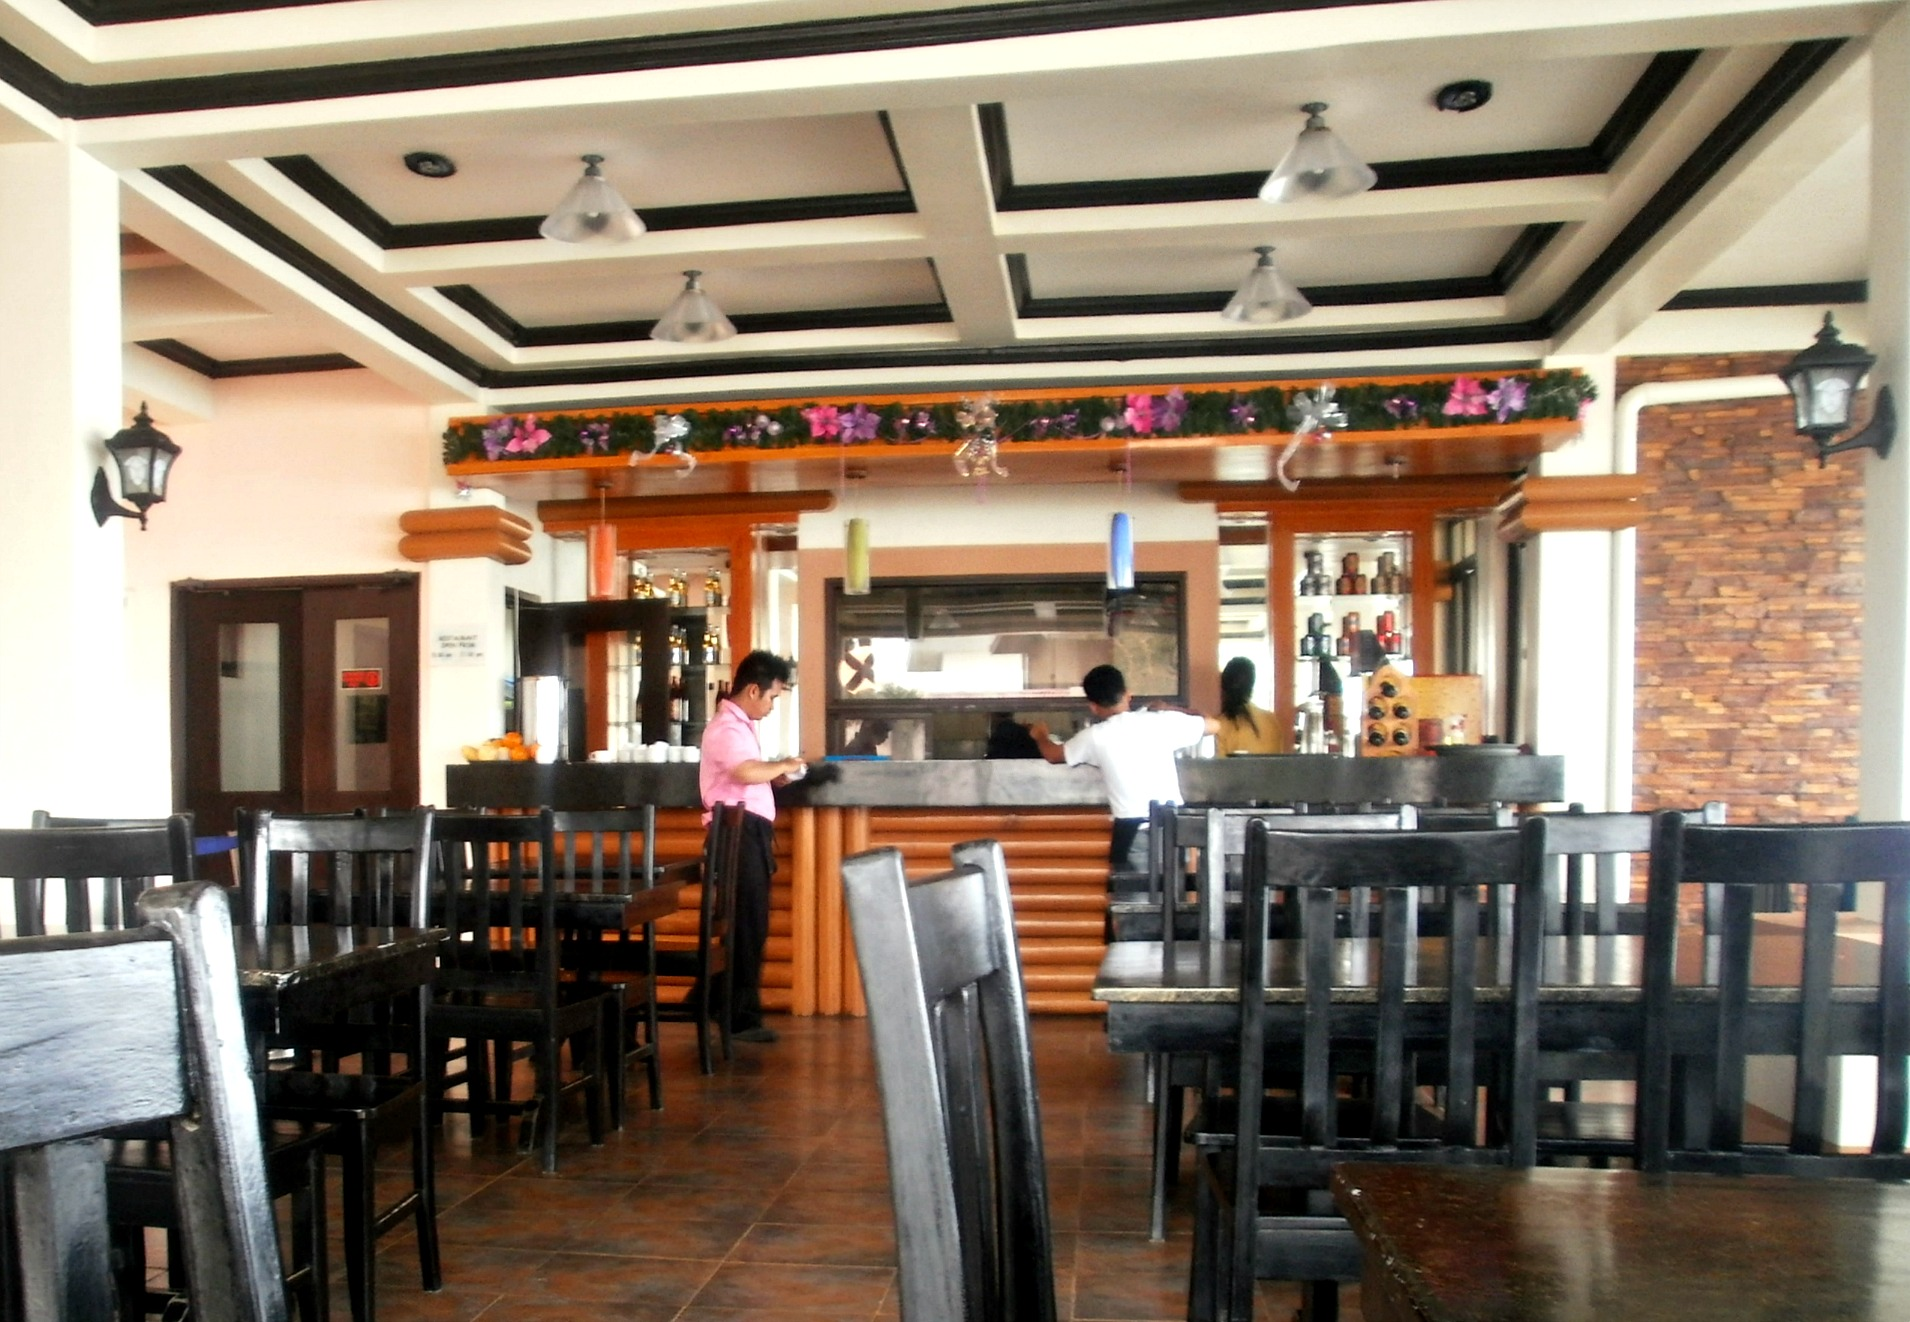 What to do in Baler; D.I. Y. Baler; What to do in Baler besides surfing; Baler itinerary; Where to eat in Baler